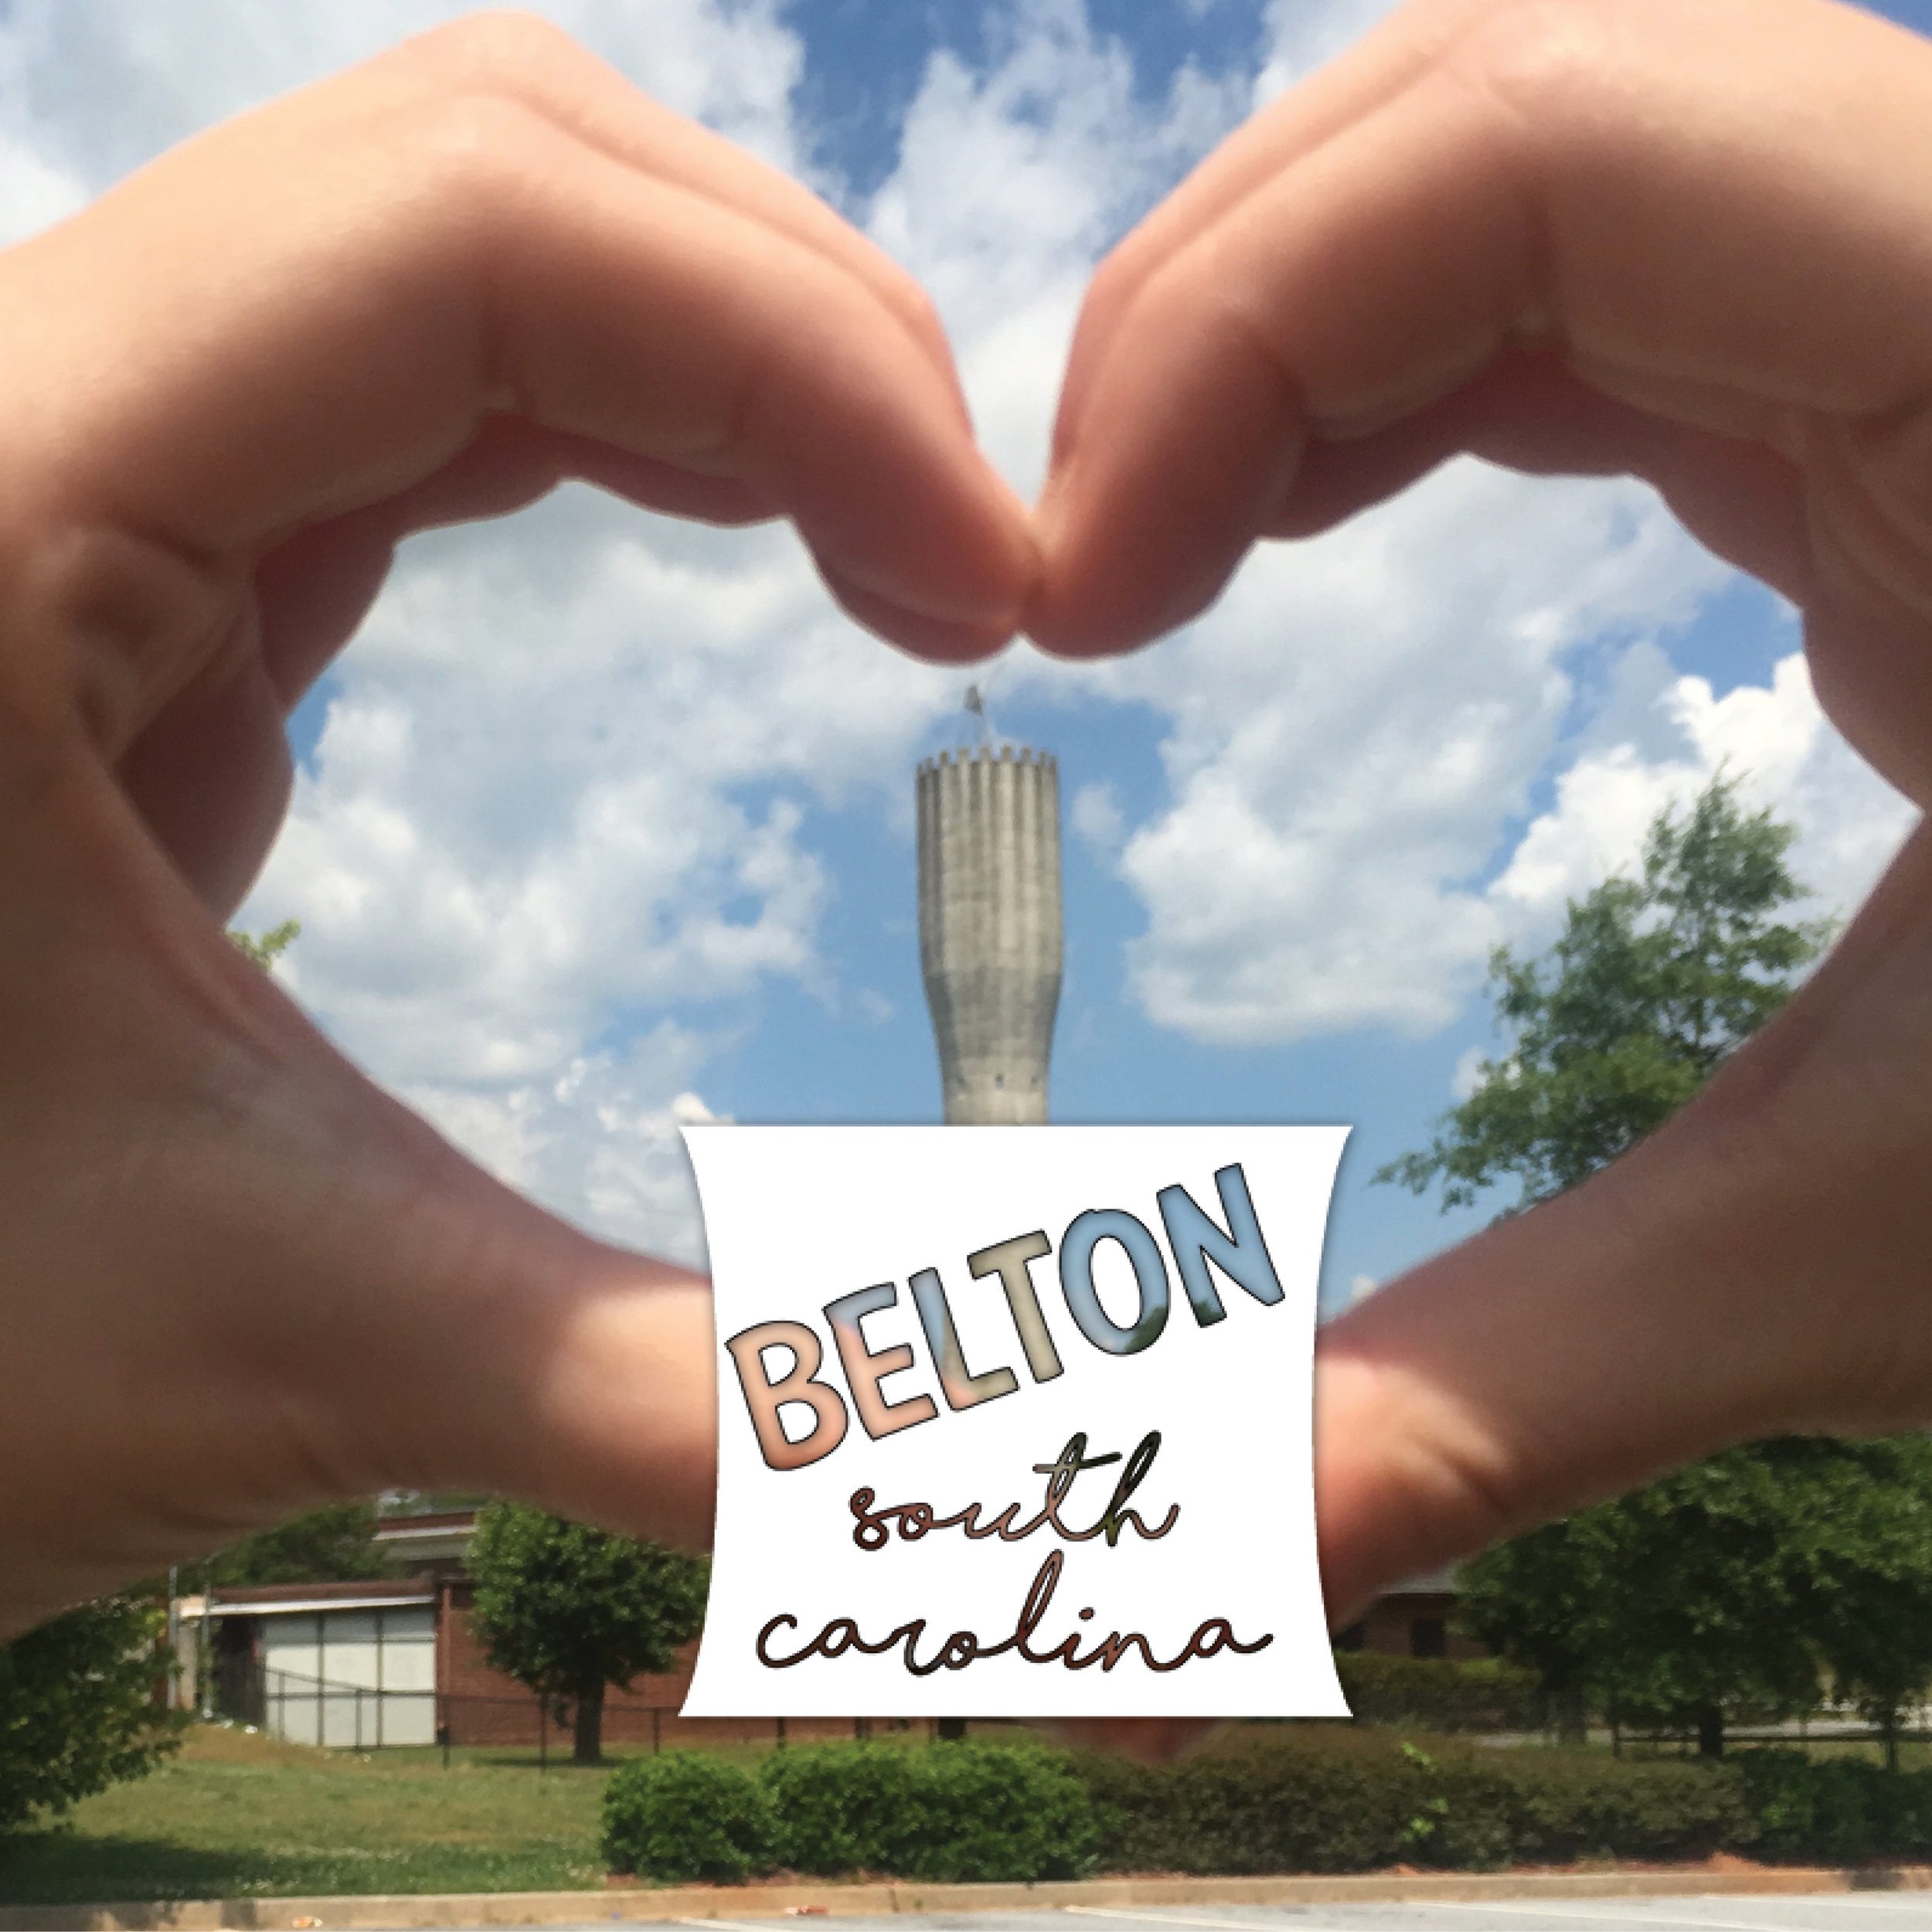 Be a Better Belton